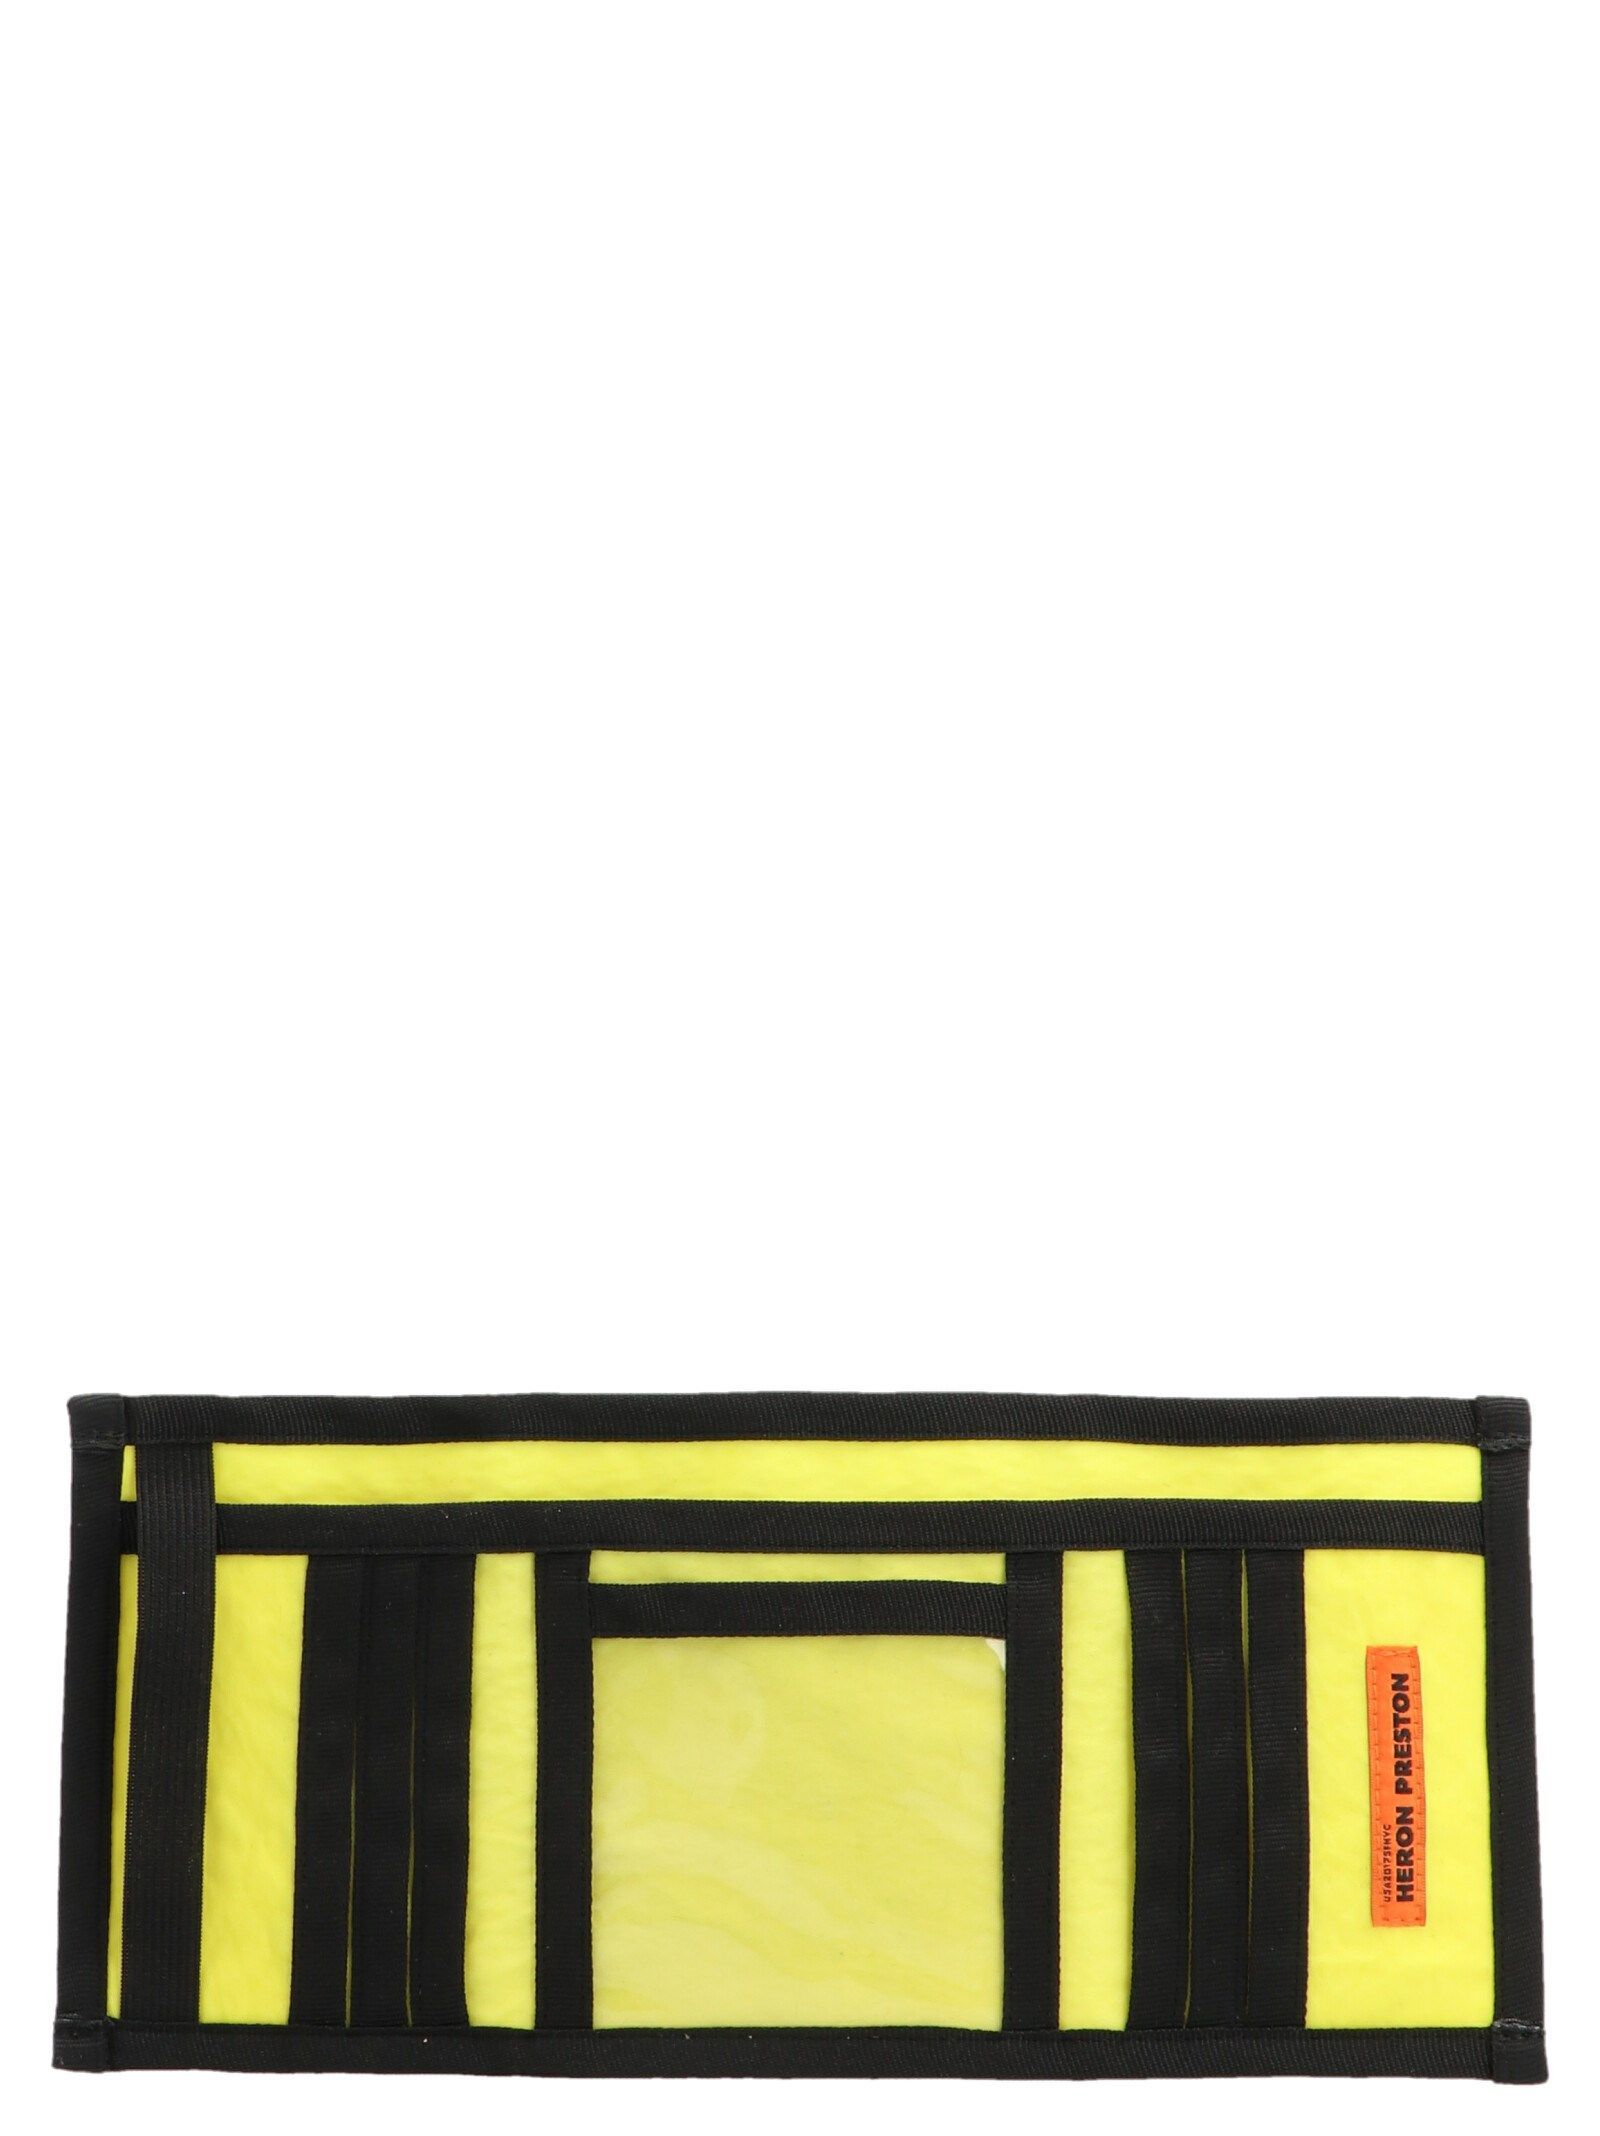 HERON PRESTON MEN'S HMNC005F198160041588 YELLOW SYNTHETIC FIBERS WALLET